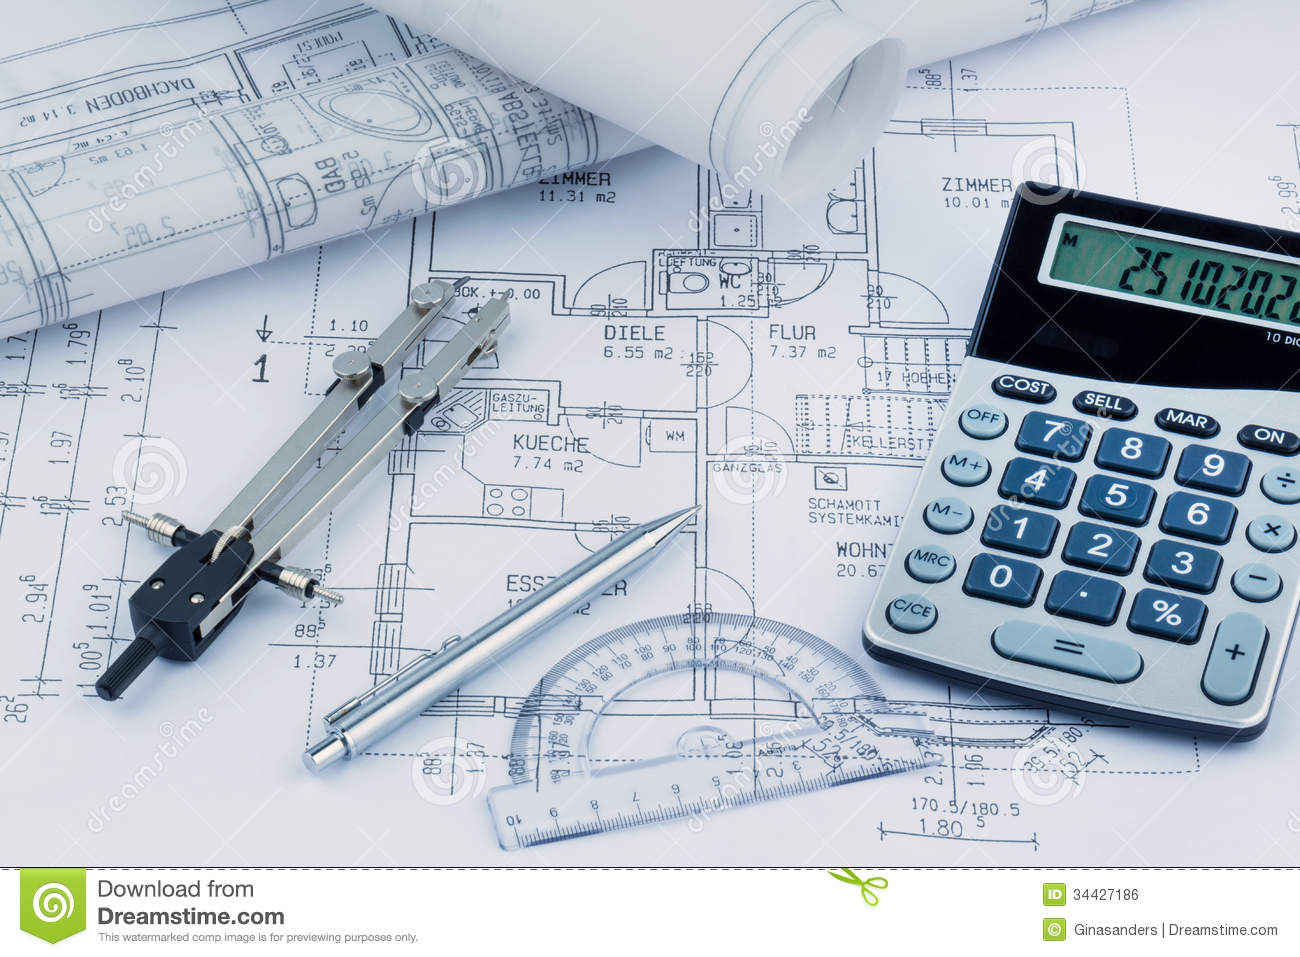 New Home Construction Plans a house plan royalty free stock image - image: 34427186